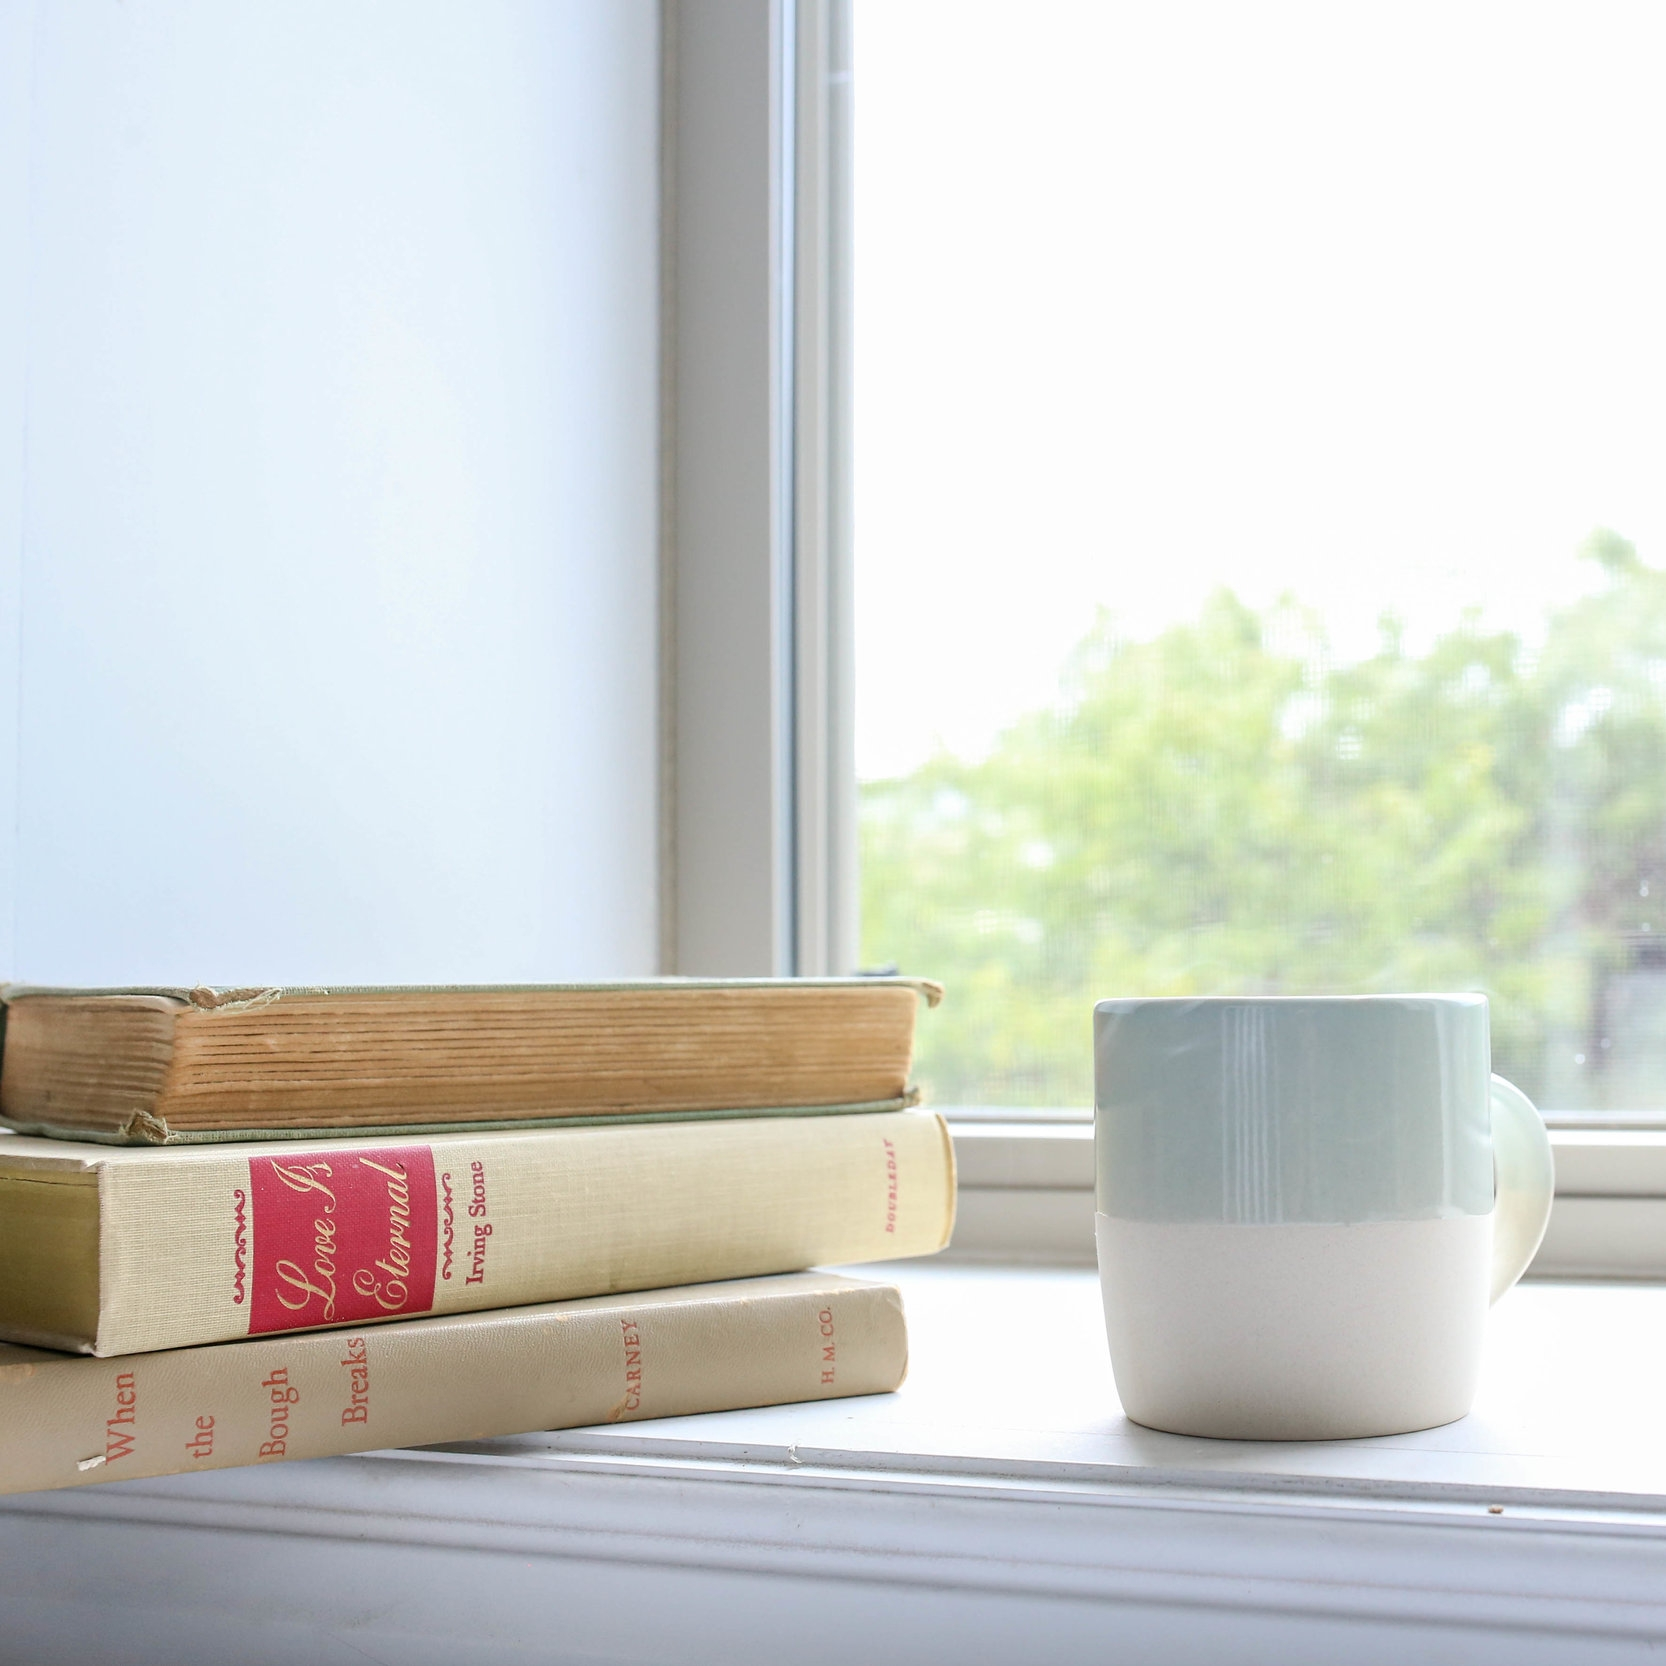 Recommended Reading - a list of reads handpicked for our community